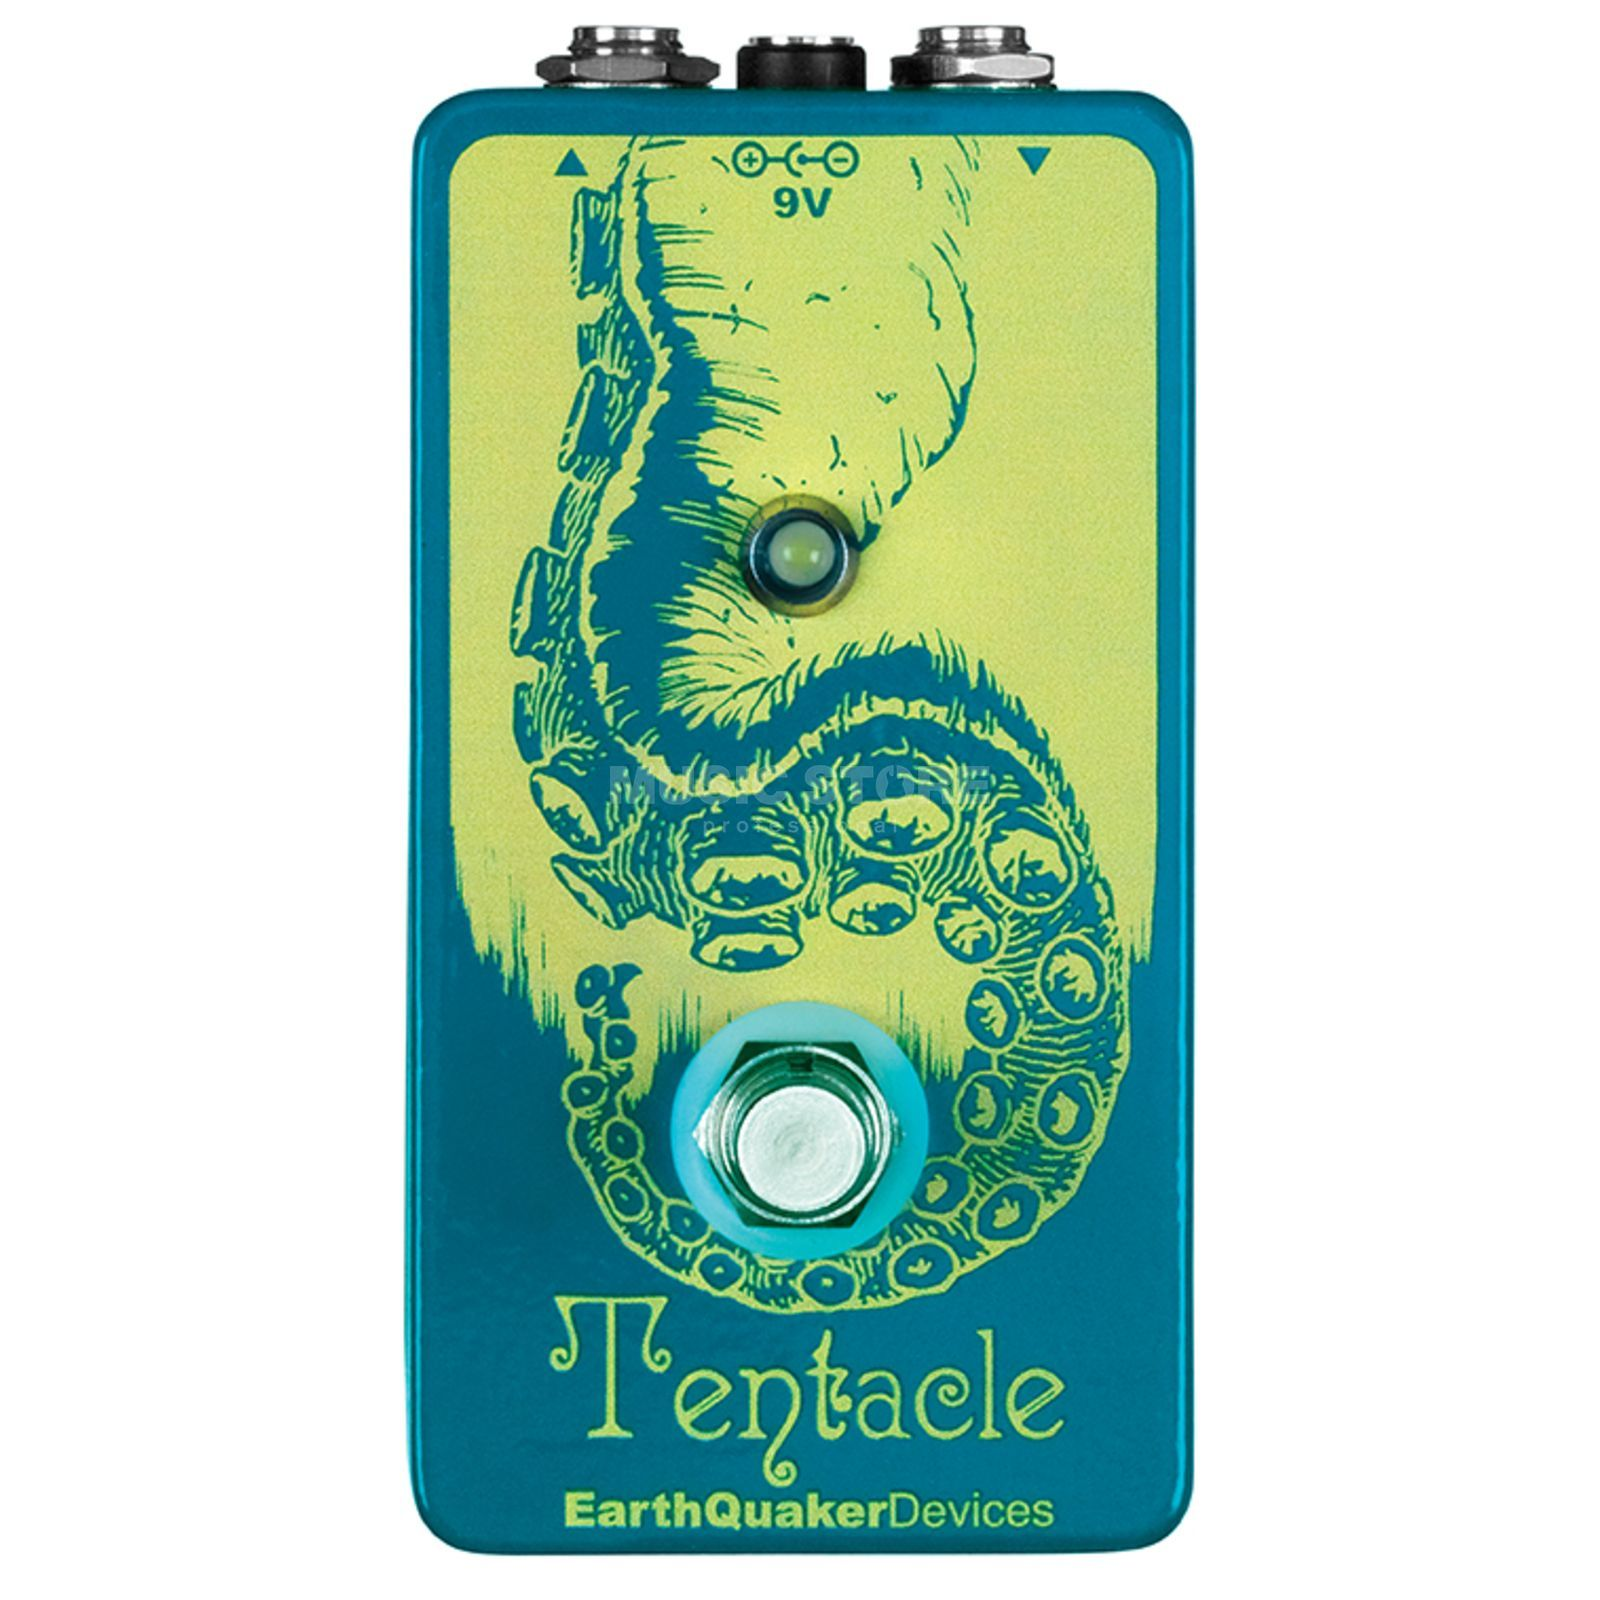 Earthquaker Devices Tentacle Analog Octave Up Изображение товара